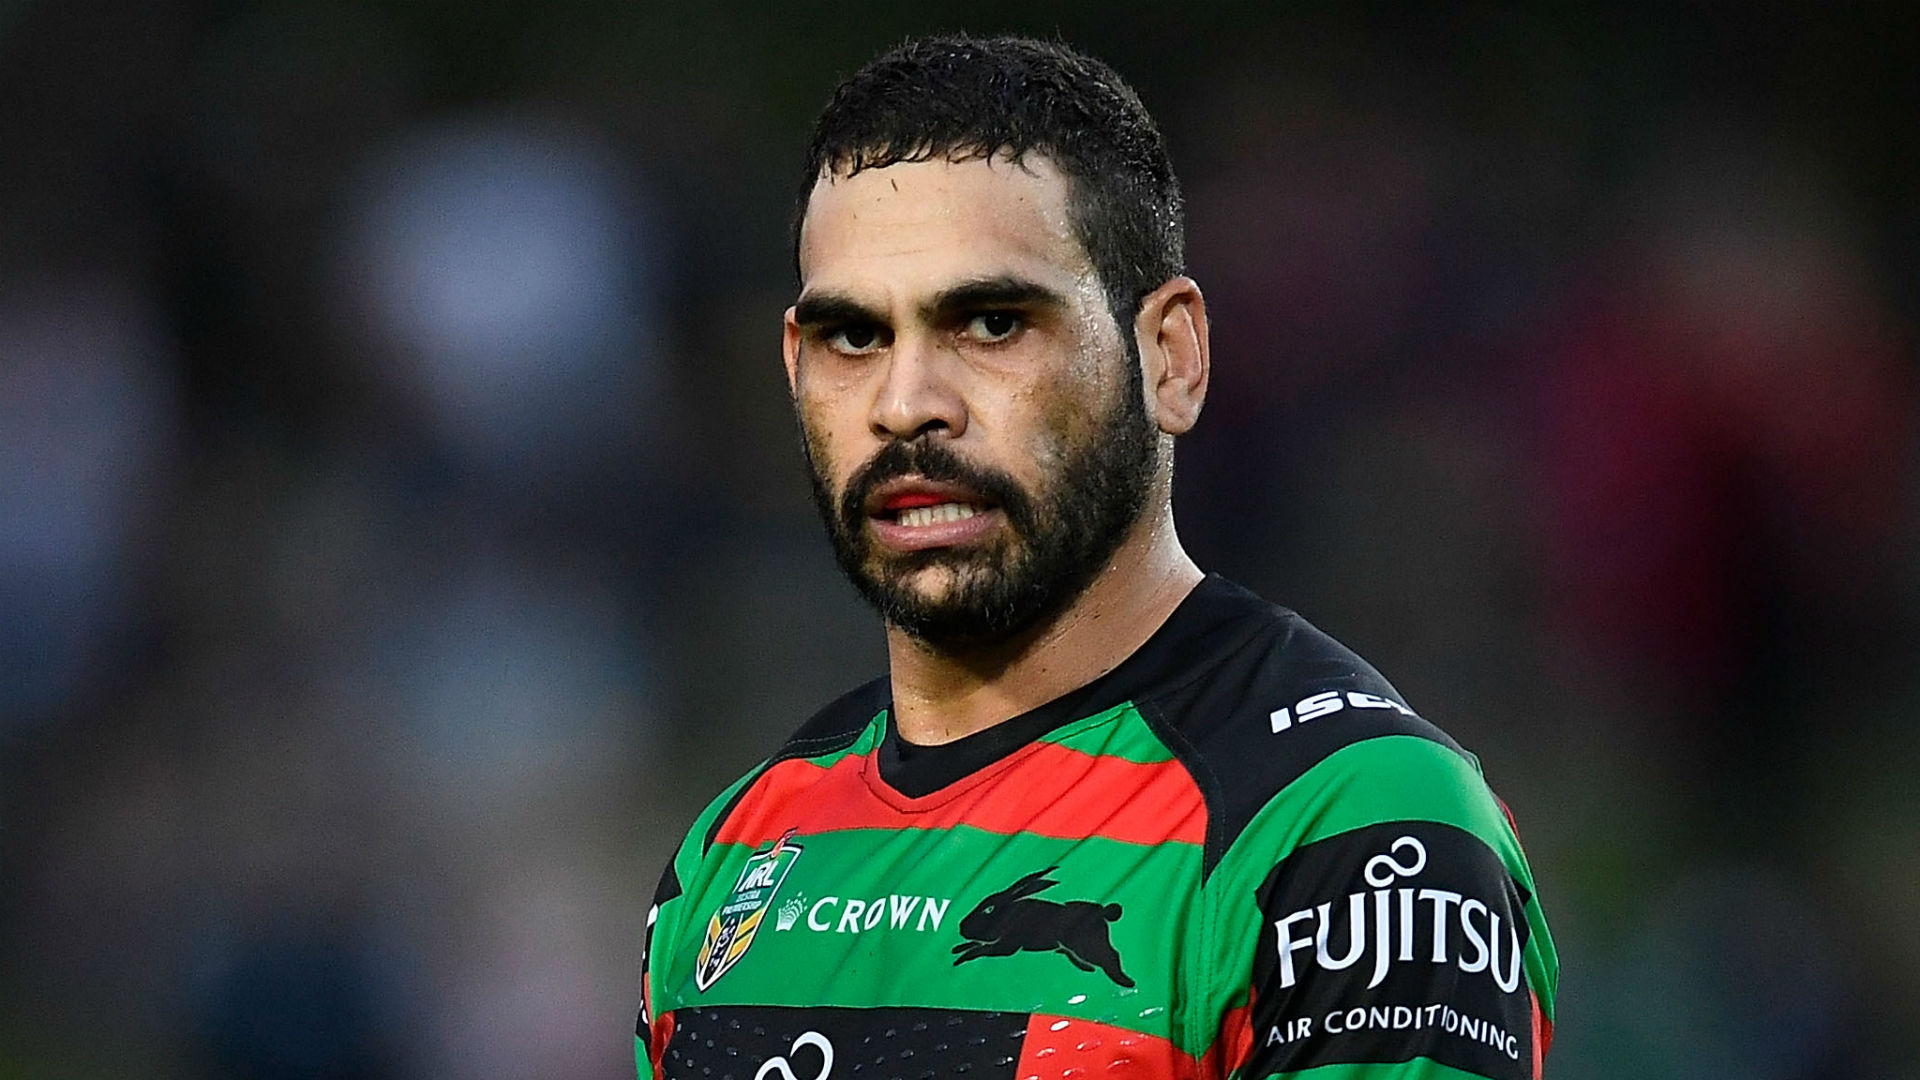 The South Sydney Rabbitohs confirmed Greg Inglis was receiving treatment for mental health issues.